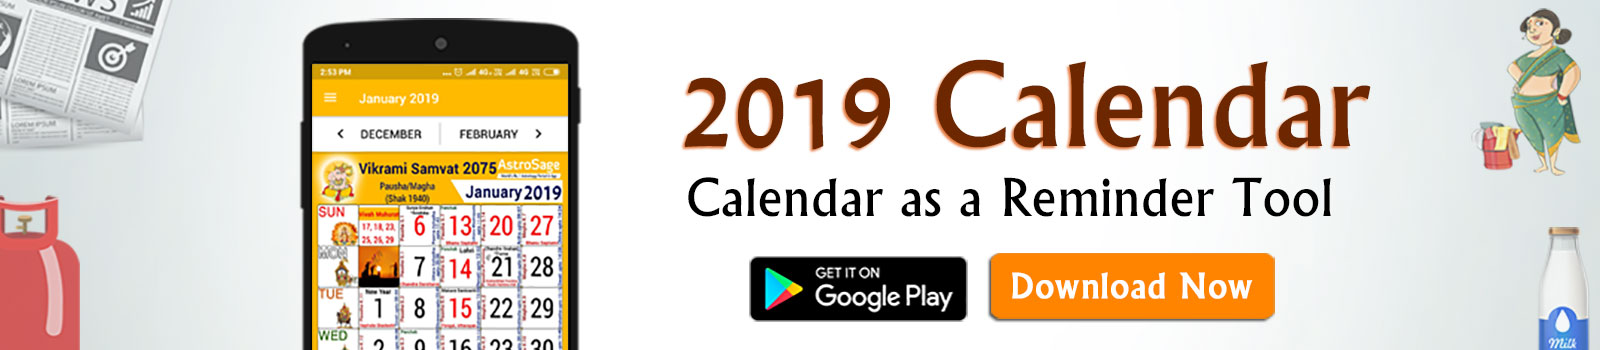 https://play.google.com/store/apps/details?id=com.ojassoft.calendar&referrer=utm_source%3Dastrosage%26utm_medium%3Dsite10m%26utm_campaign%3Dmobileapp